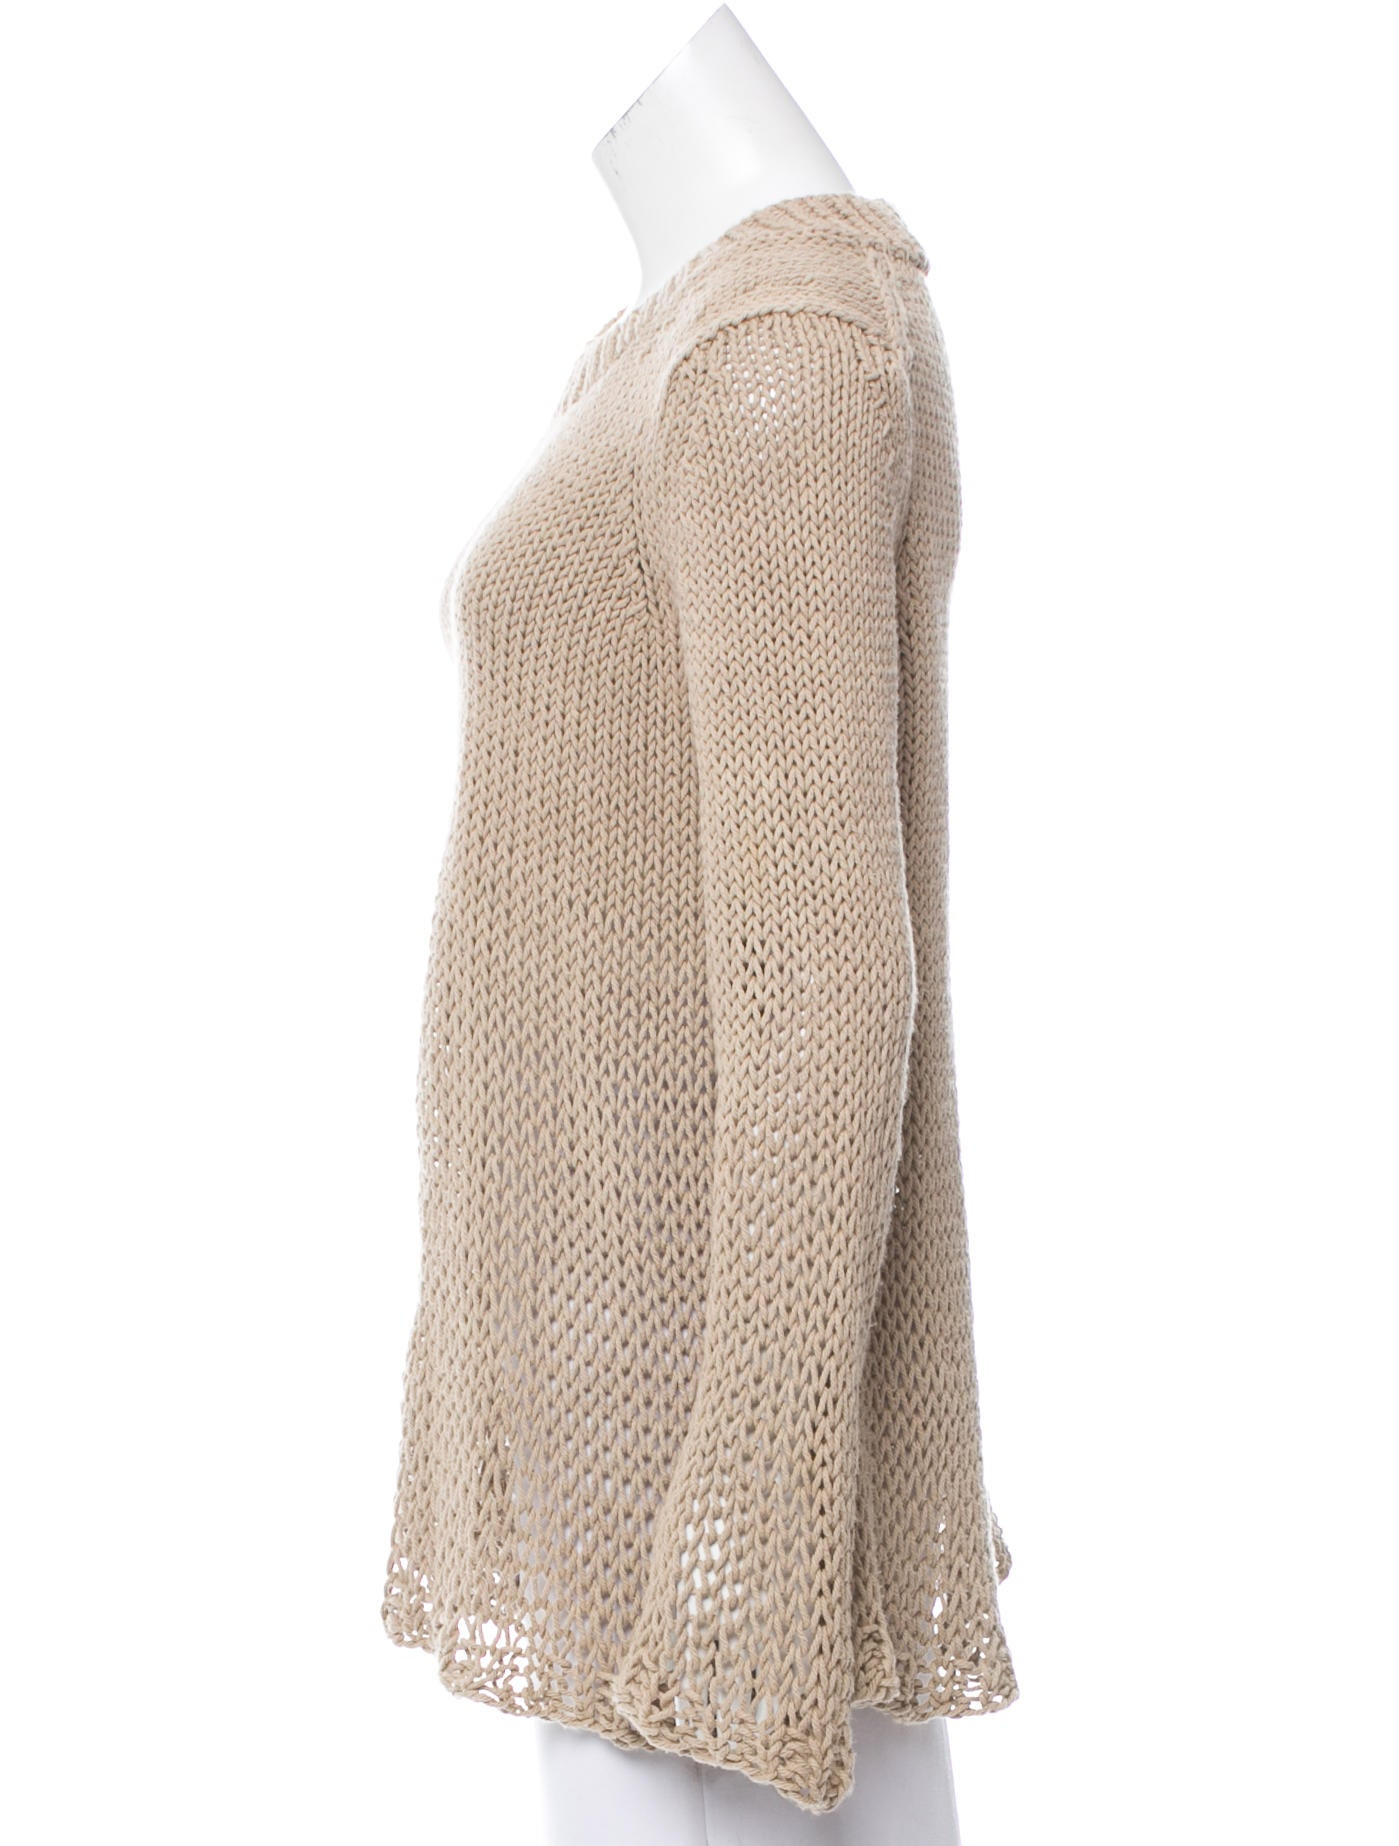 michael kors oversize knit sweater clothing mic52946 the realreal. Black Bedroom Furniture Sets. Home Design Ideas